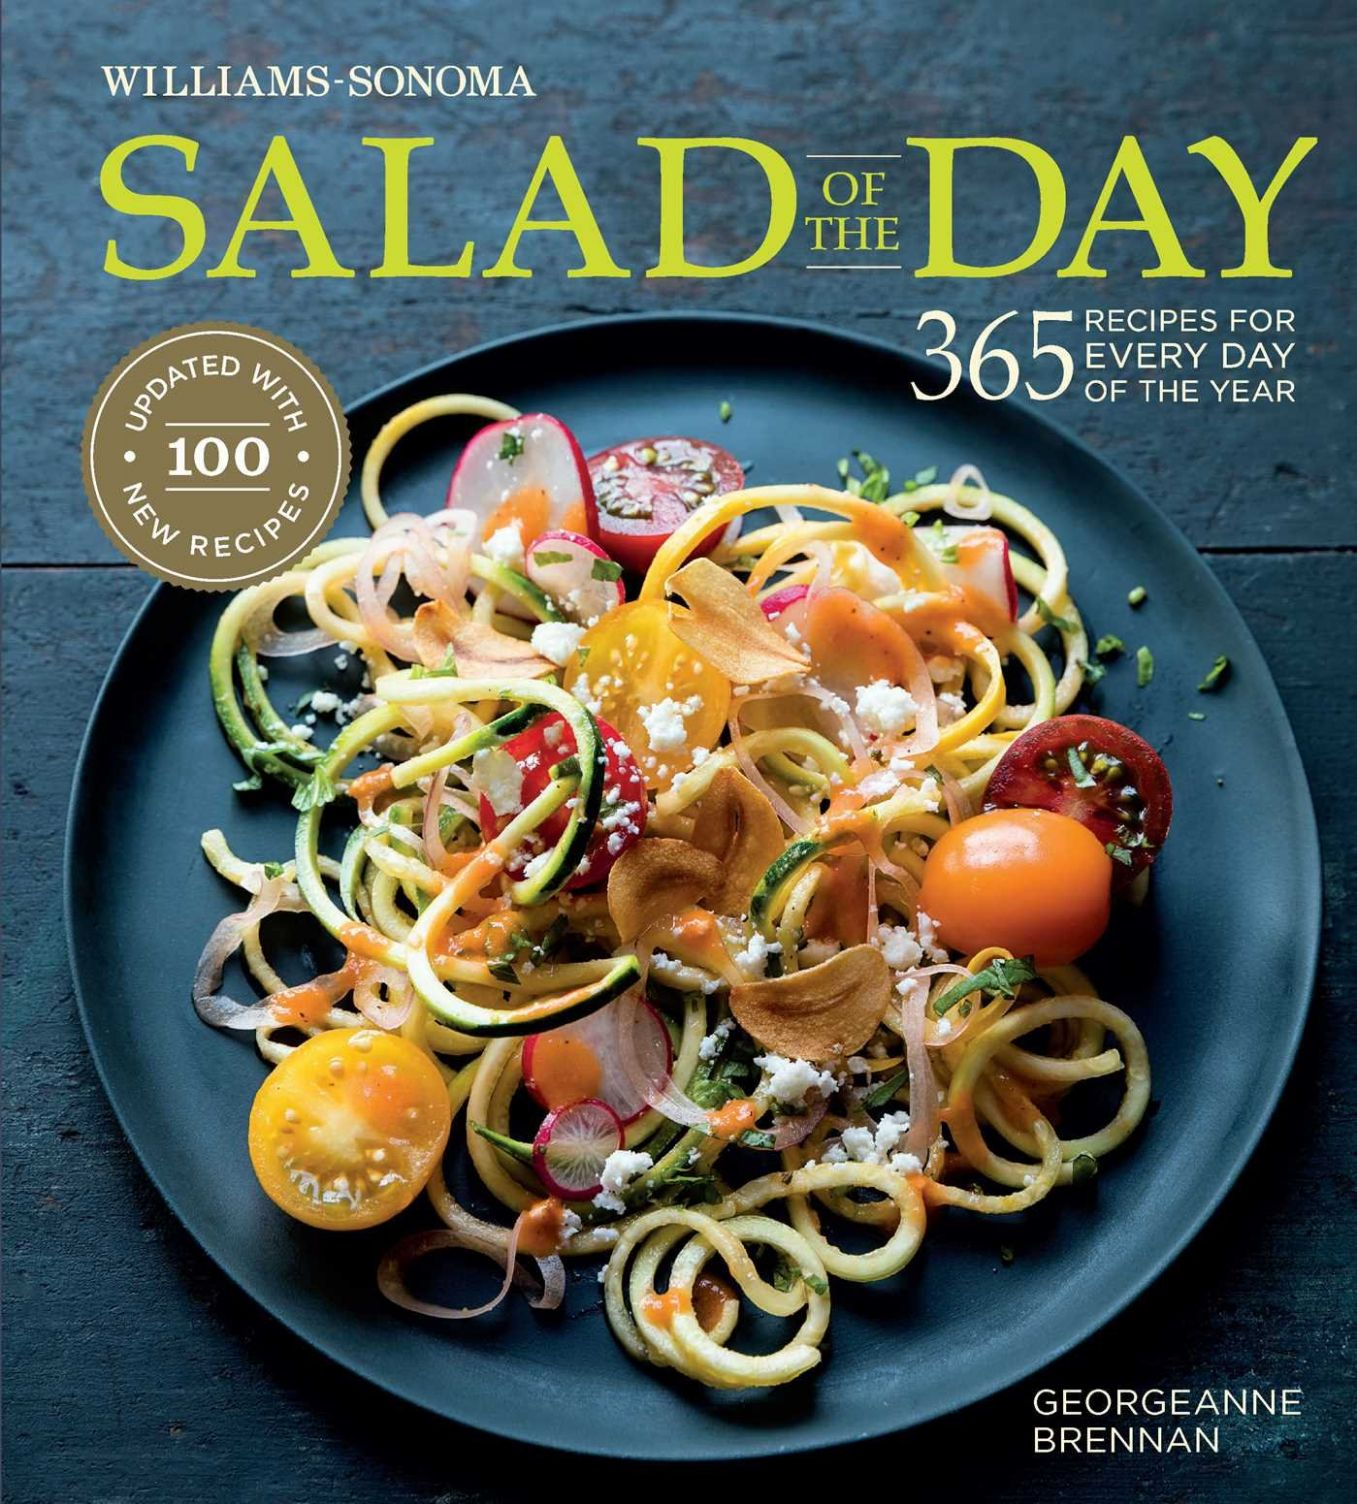 8 Cookbooks That Are All About Salad - Salad Recipes Book